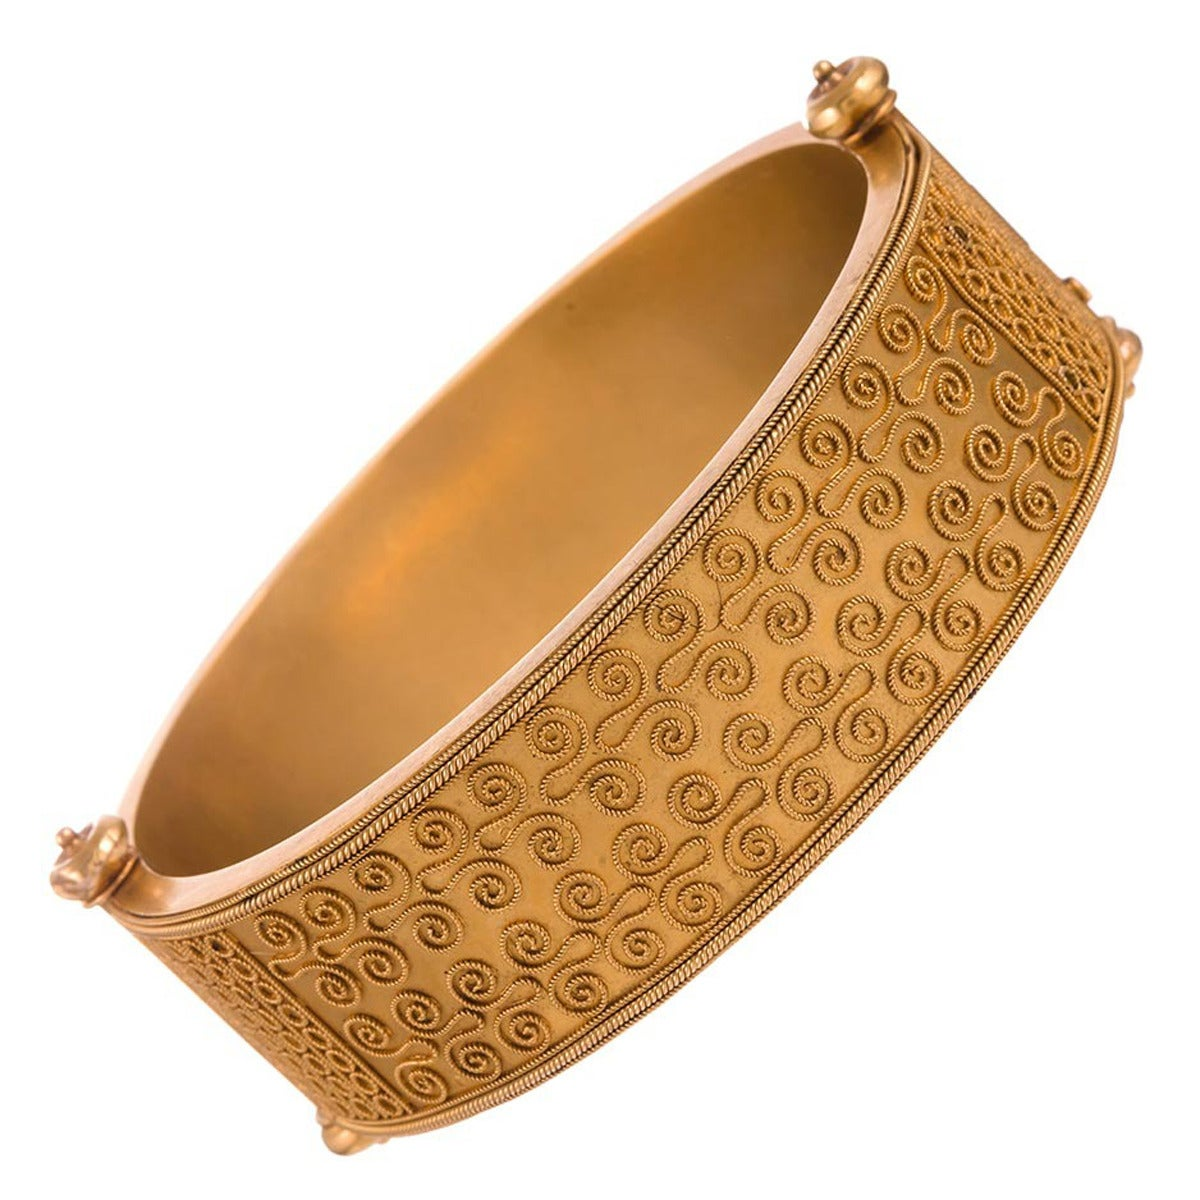 Victorian Stunning Etruscan Revival Double-Sided Bangle Bracelet